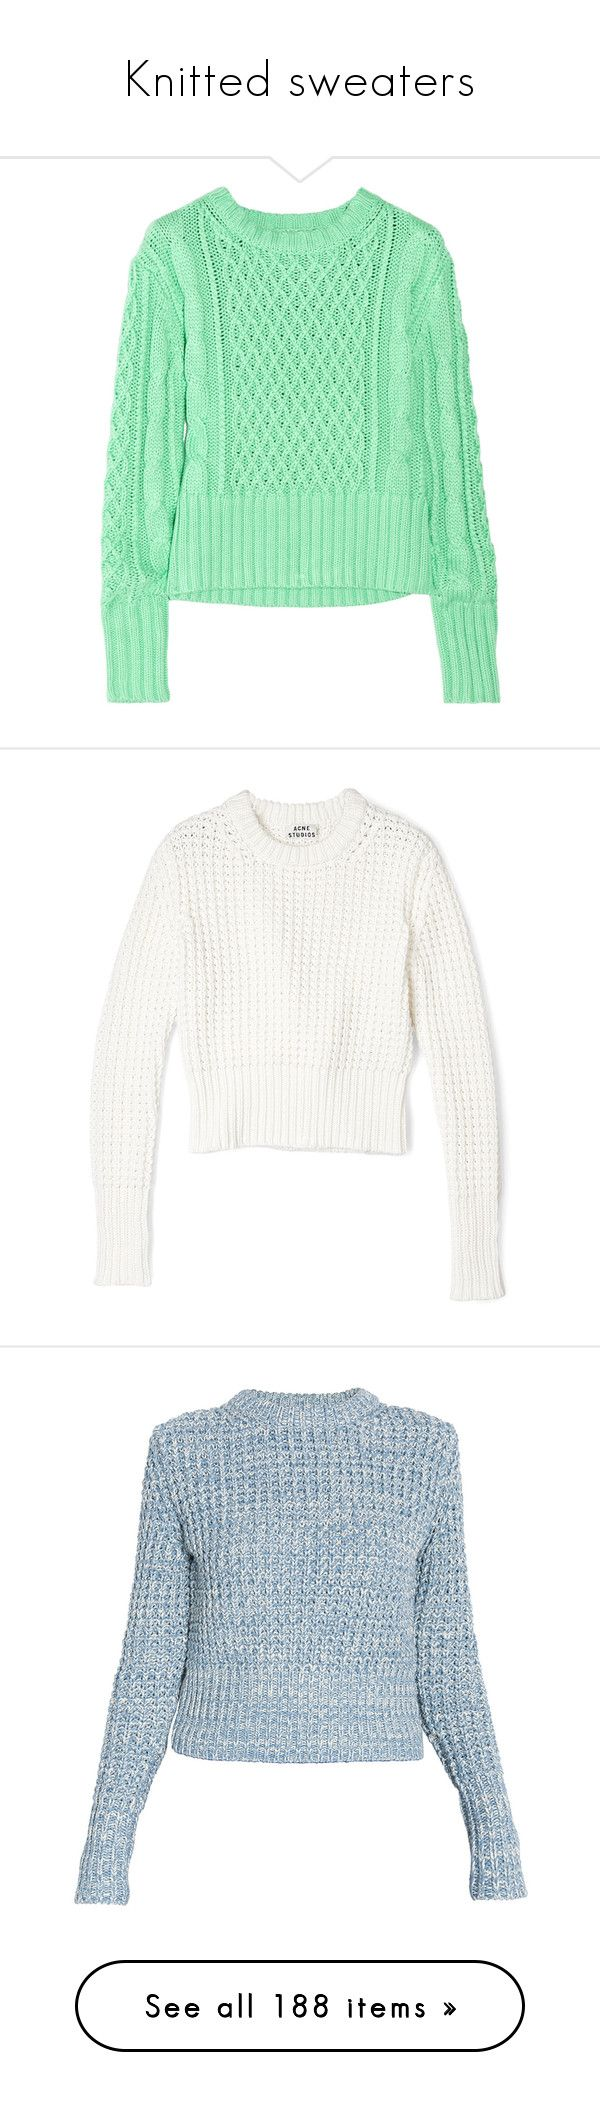 """Knitted sweaters"" by mars ❤ liked on Polyvore featuring sweaters, knitted, knittedsweaters, tops, shirts, jumpers, mint shirt, green cable sweater, cable jumper and shirt sweater"